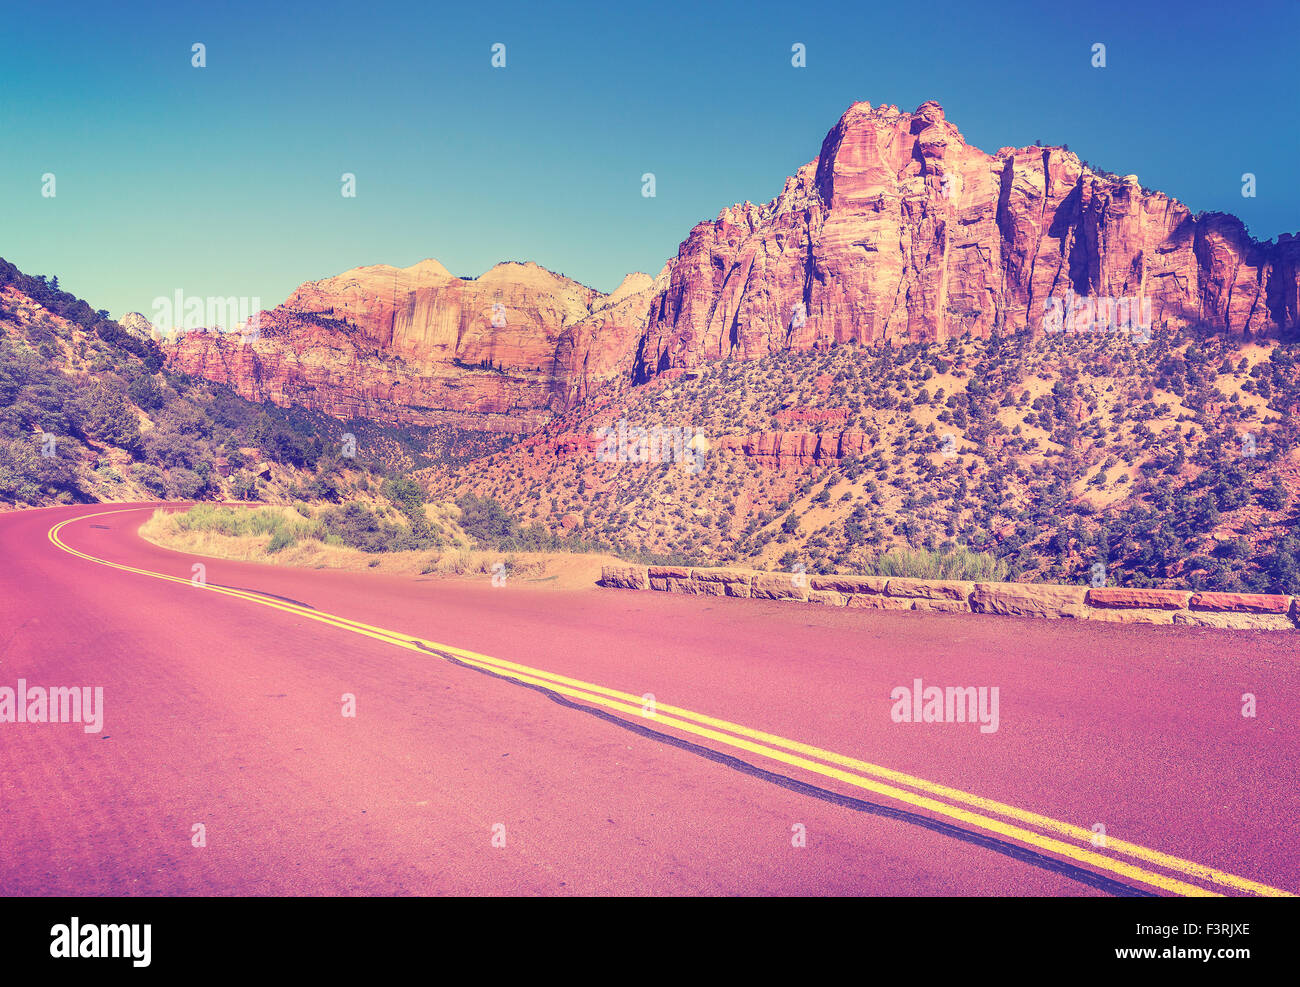 Vintage stylized country road in Zion National Park, Utah, USA. - Stock Image